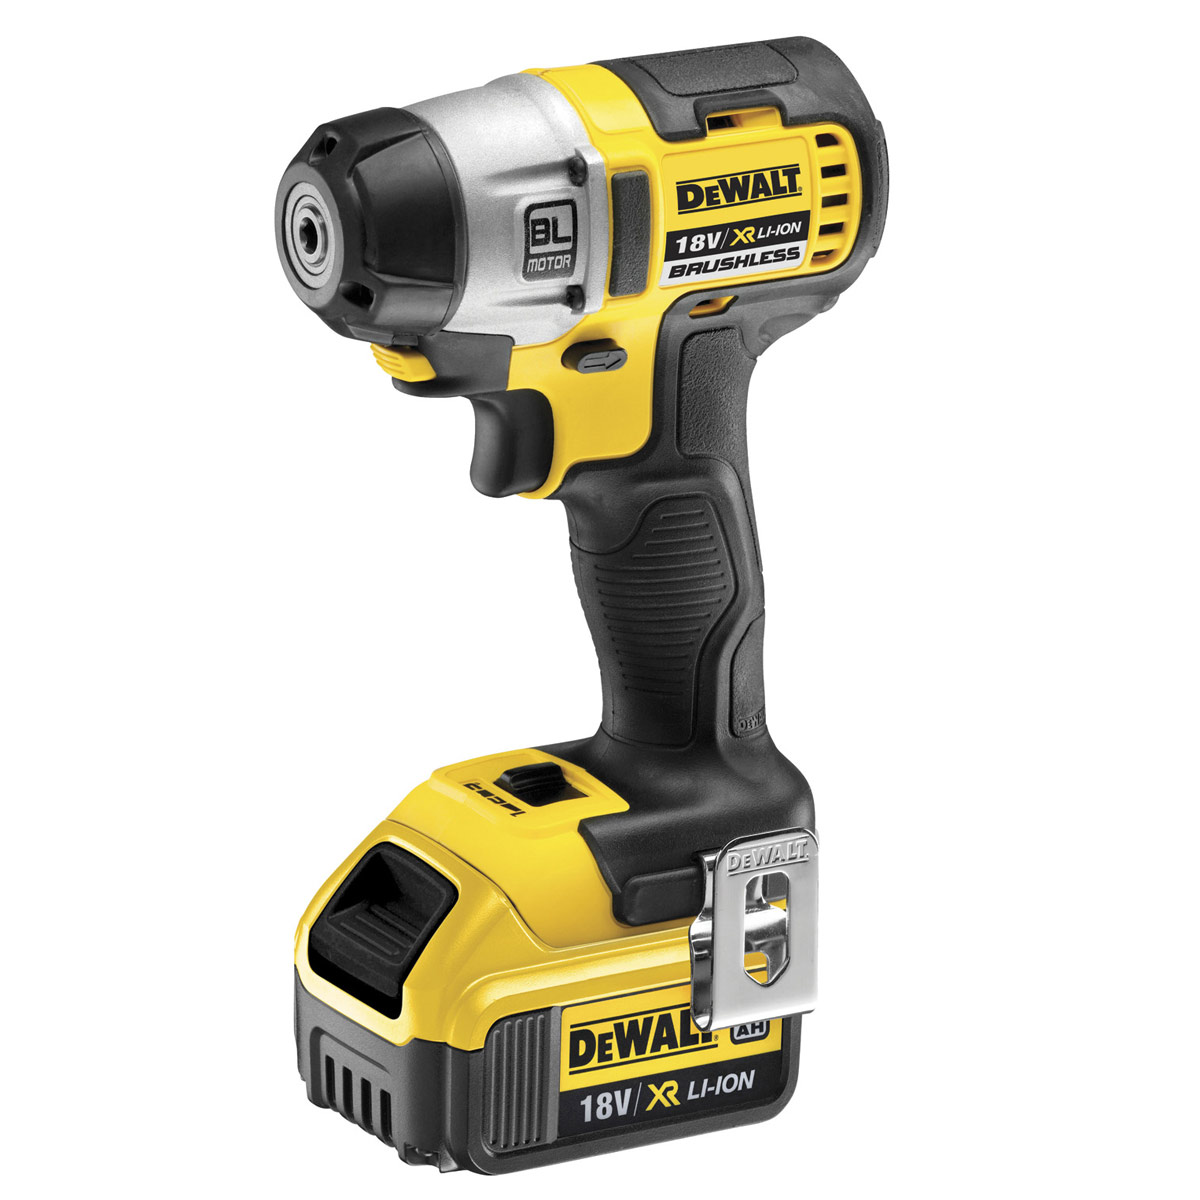 DEWALT DCF895M2 18V VOLT XR BRUSHLESS IMPACT DRIVER WITH 2x 4.0AH LI-ION BATTERIES